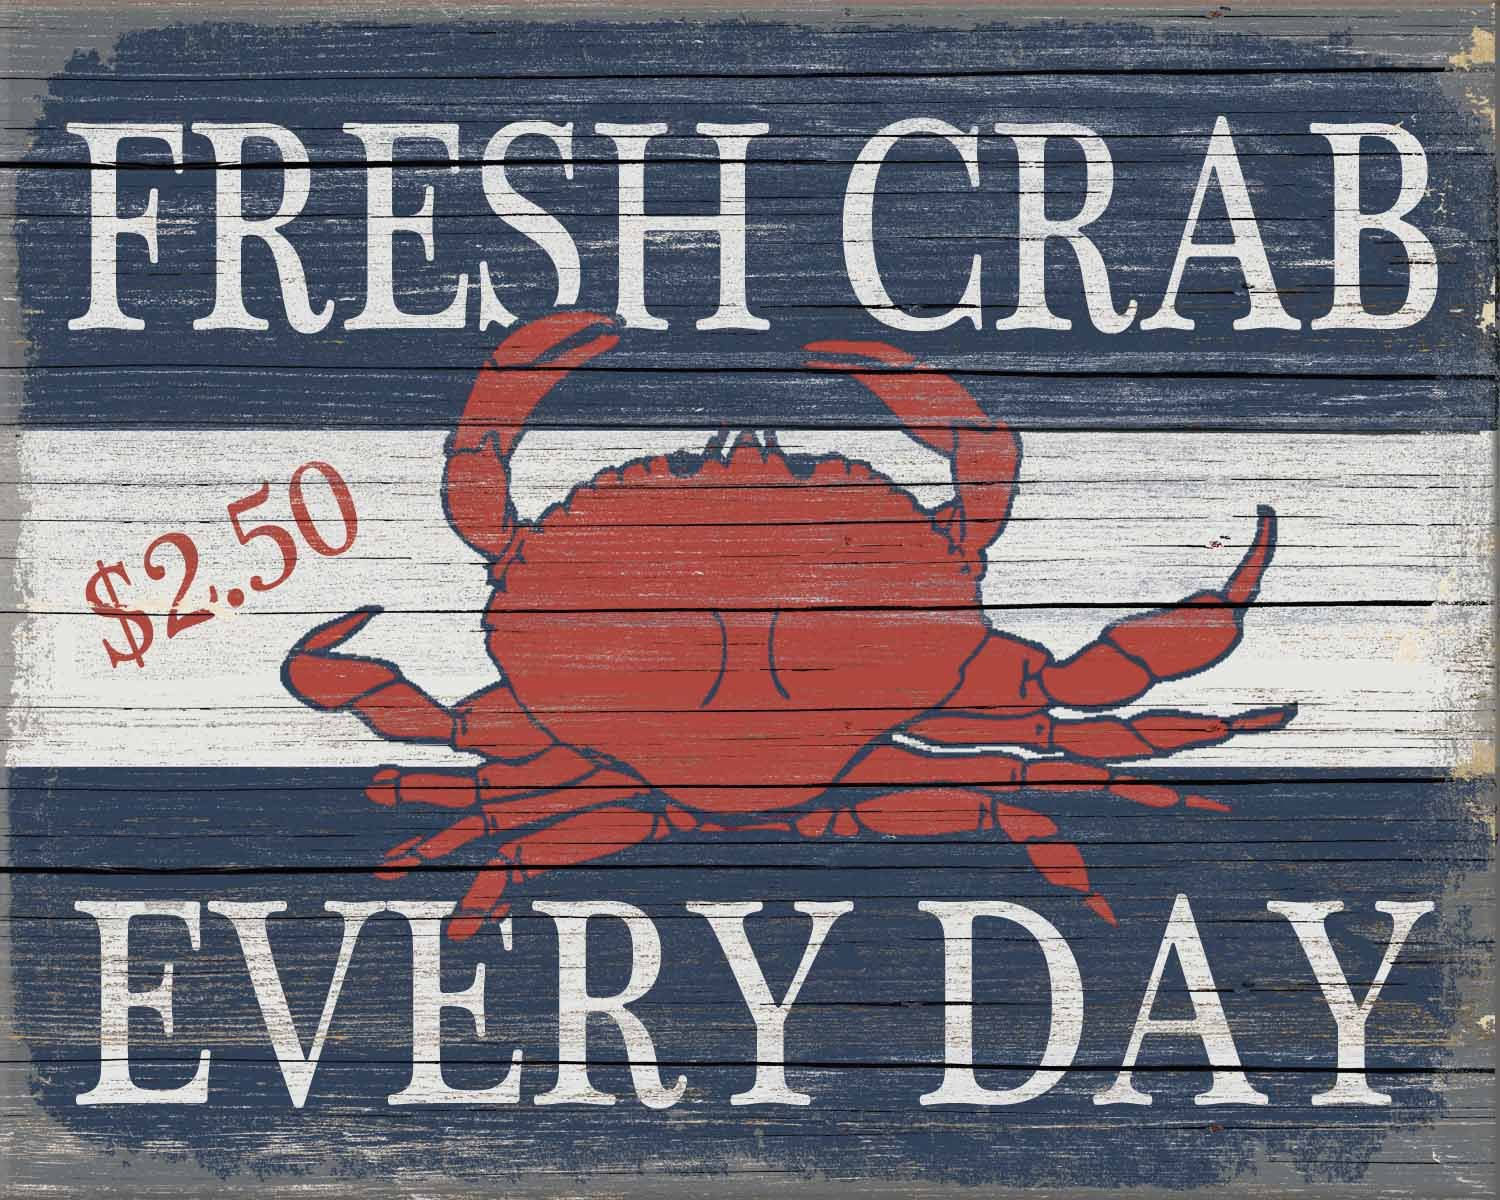 Sixtrees Fresh Crab Every Day Dollar 2.50 Flat Sign by SIXTREES